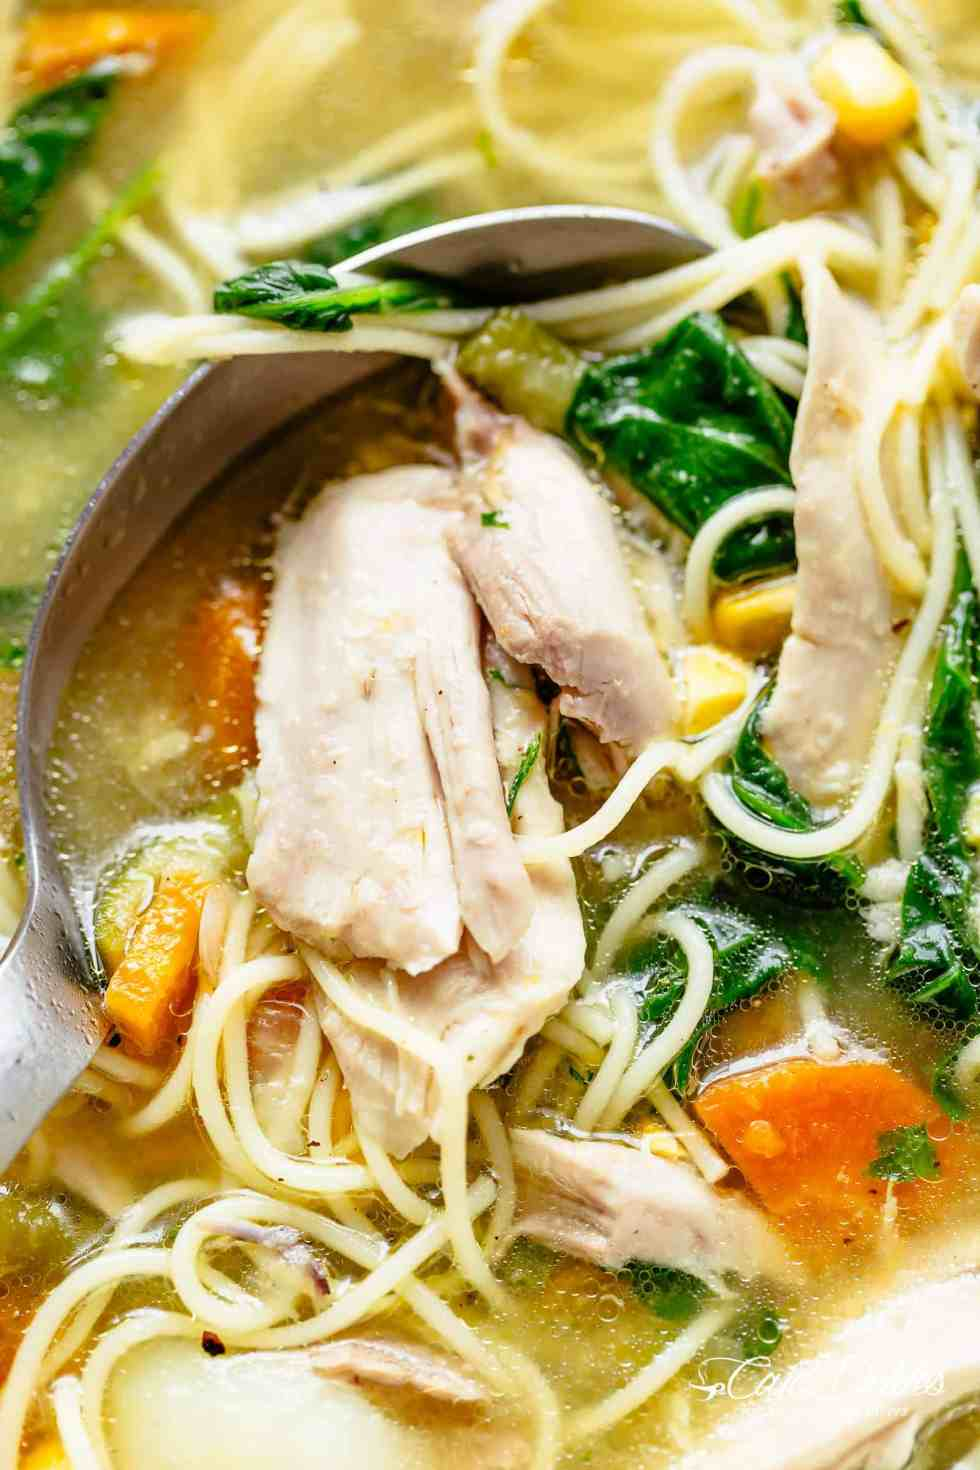 Homemade Chicken Noodle Soup is perfect for any day of the week with the broth AND the soup made from scratch in under 45 minutes. | cafedelites.com